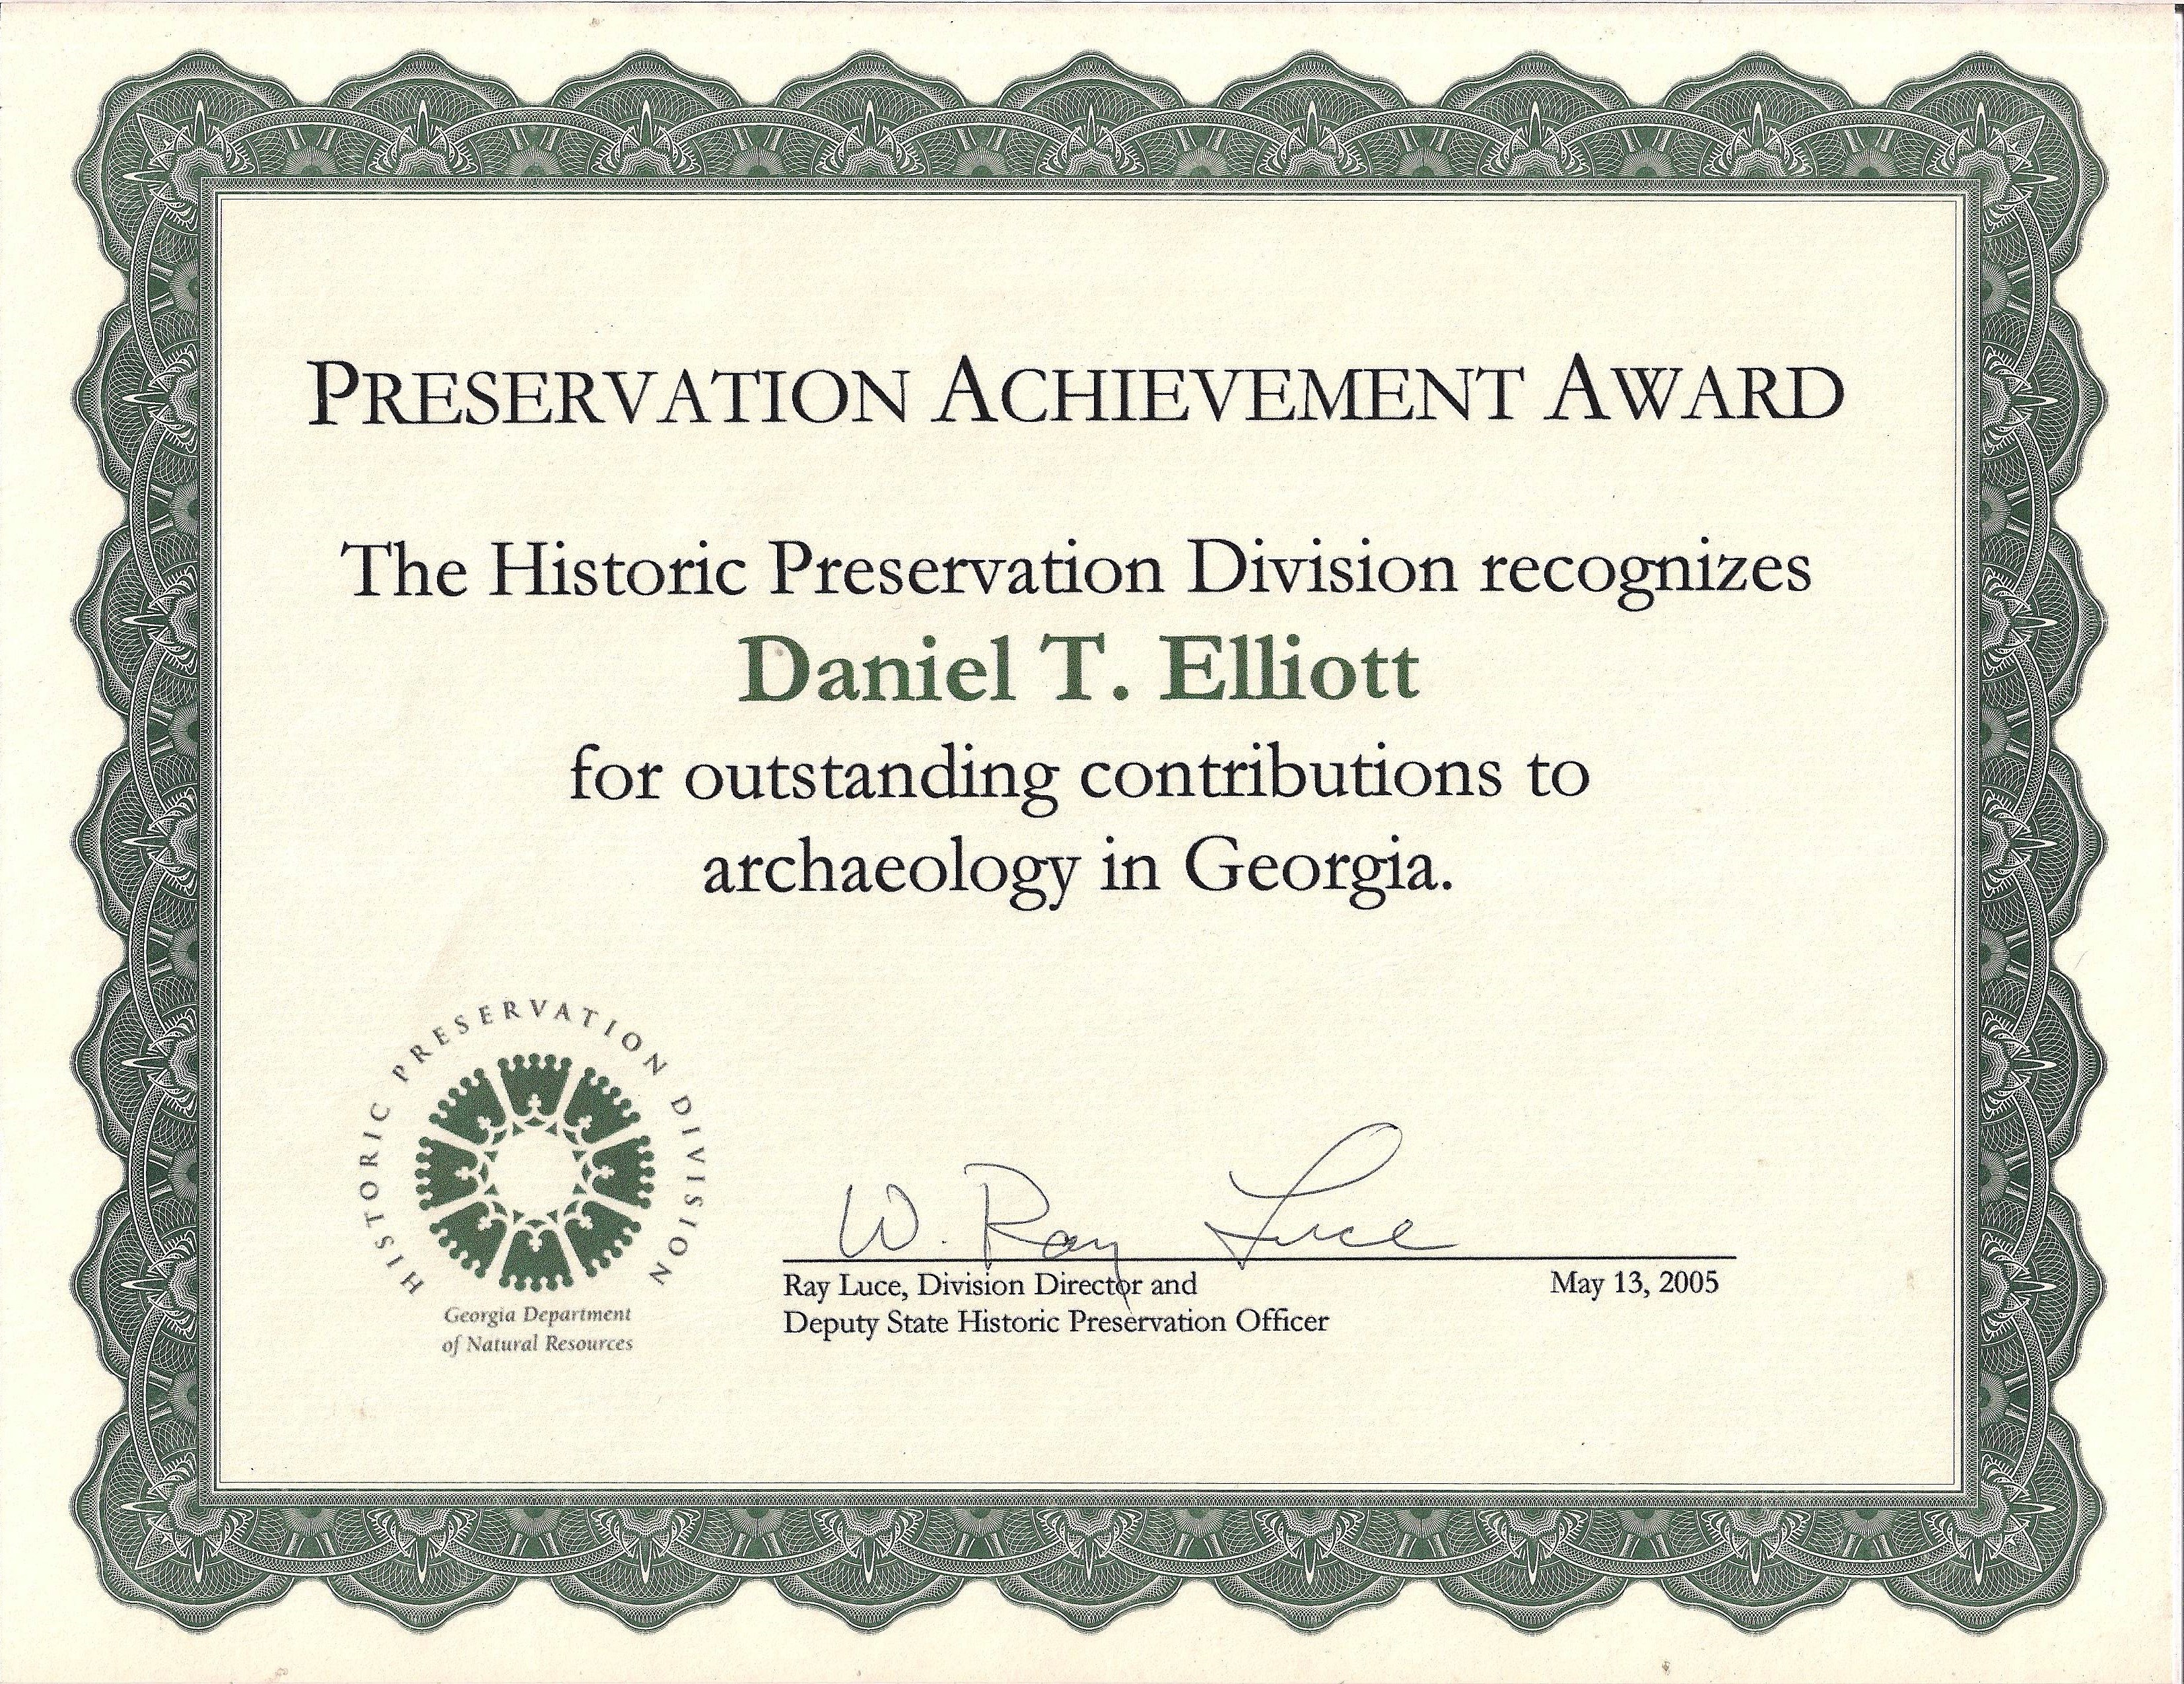 9th Annual Historic Preservation Achievement Award